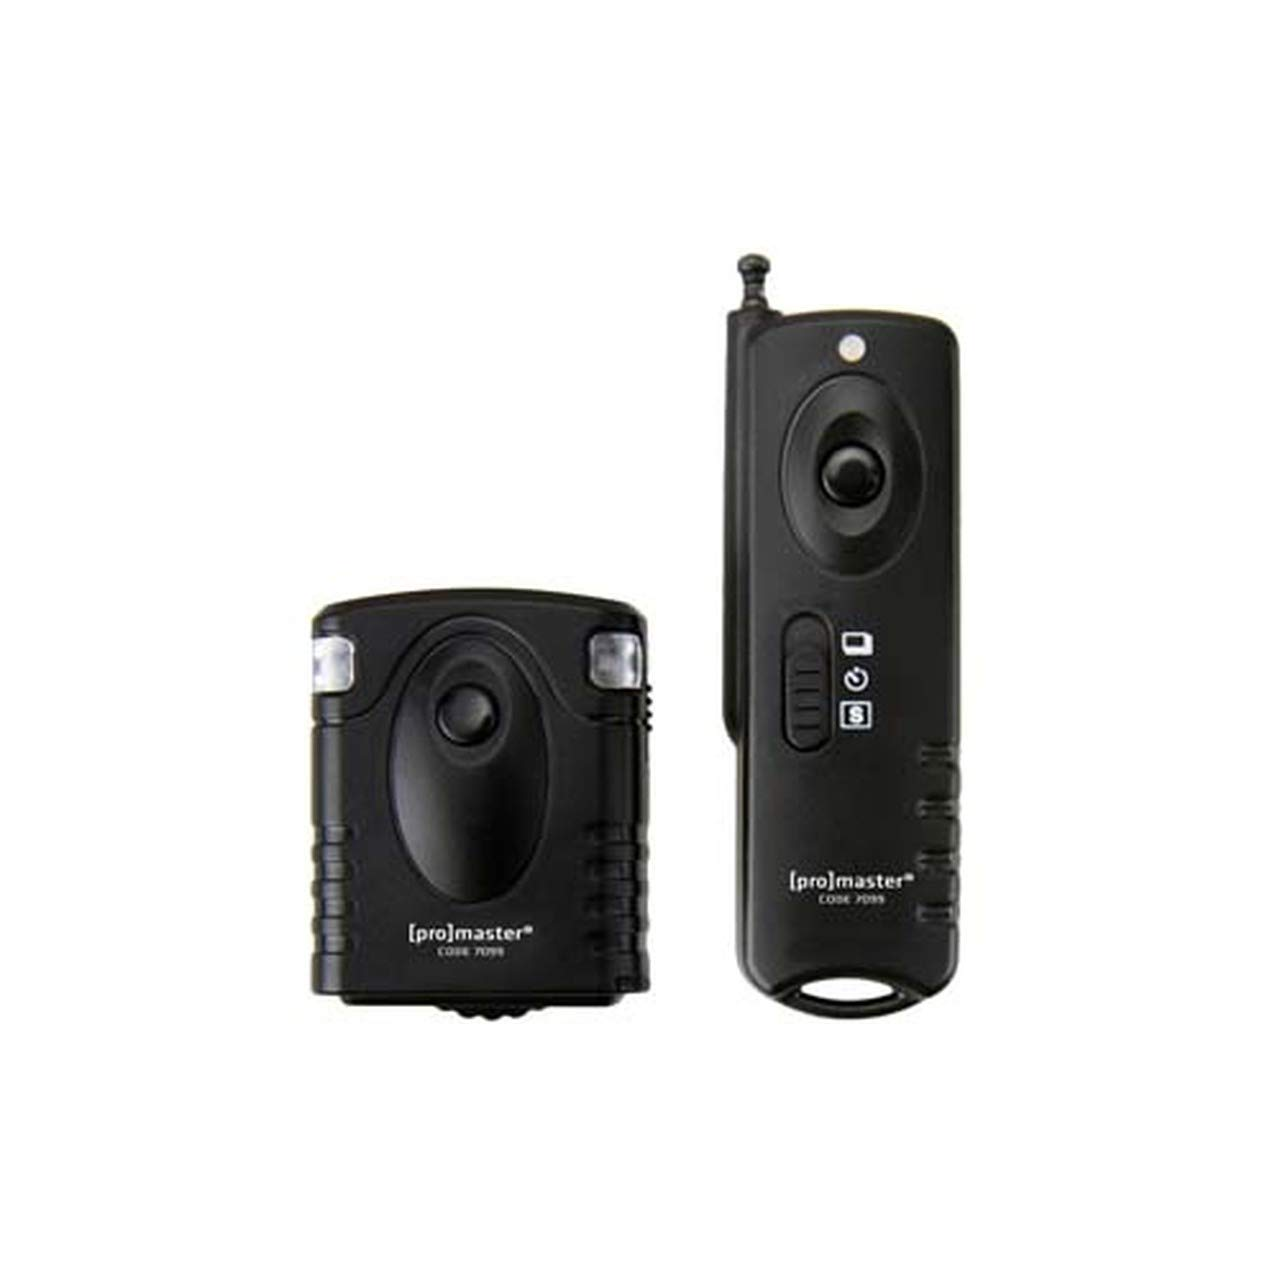 Promaster Wireless Remote Shutter Release by Promaster